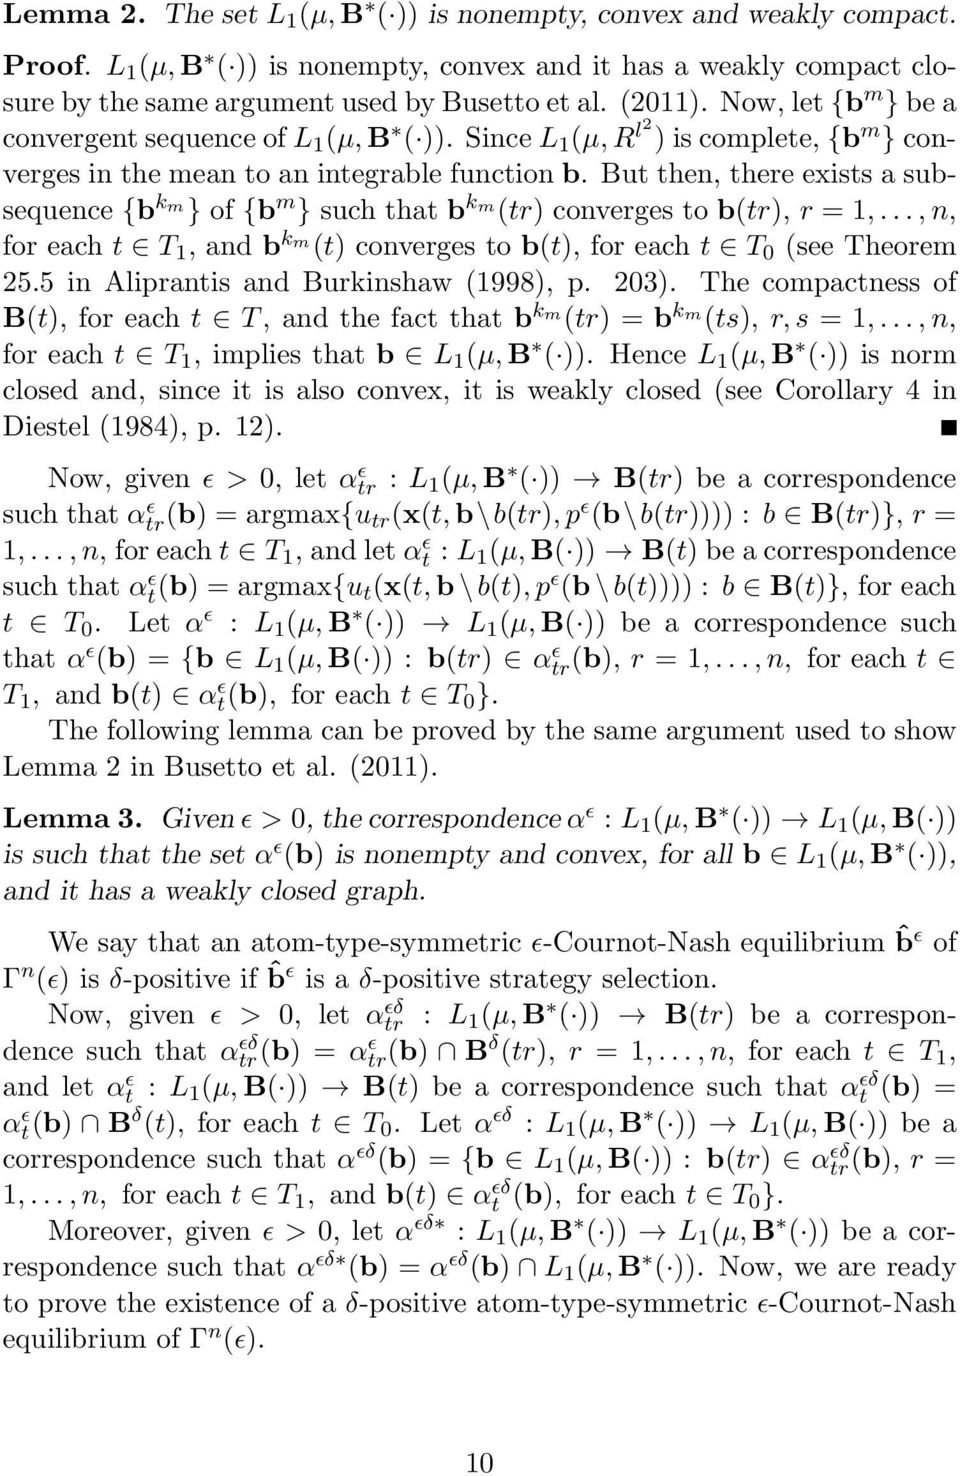 But then, there exists a subsequence {b k m } of {b m } such that b k m (tr) converges to b(tr), r = 1,..., n, for each t T 1, and b k m (t) converges to b(t), for each t T 0 (see Theorem 25.